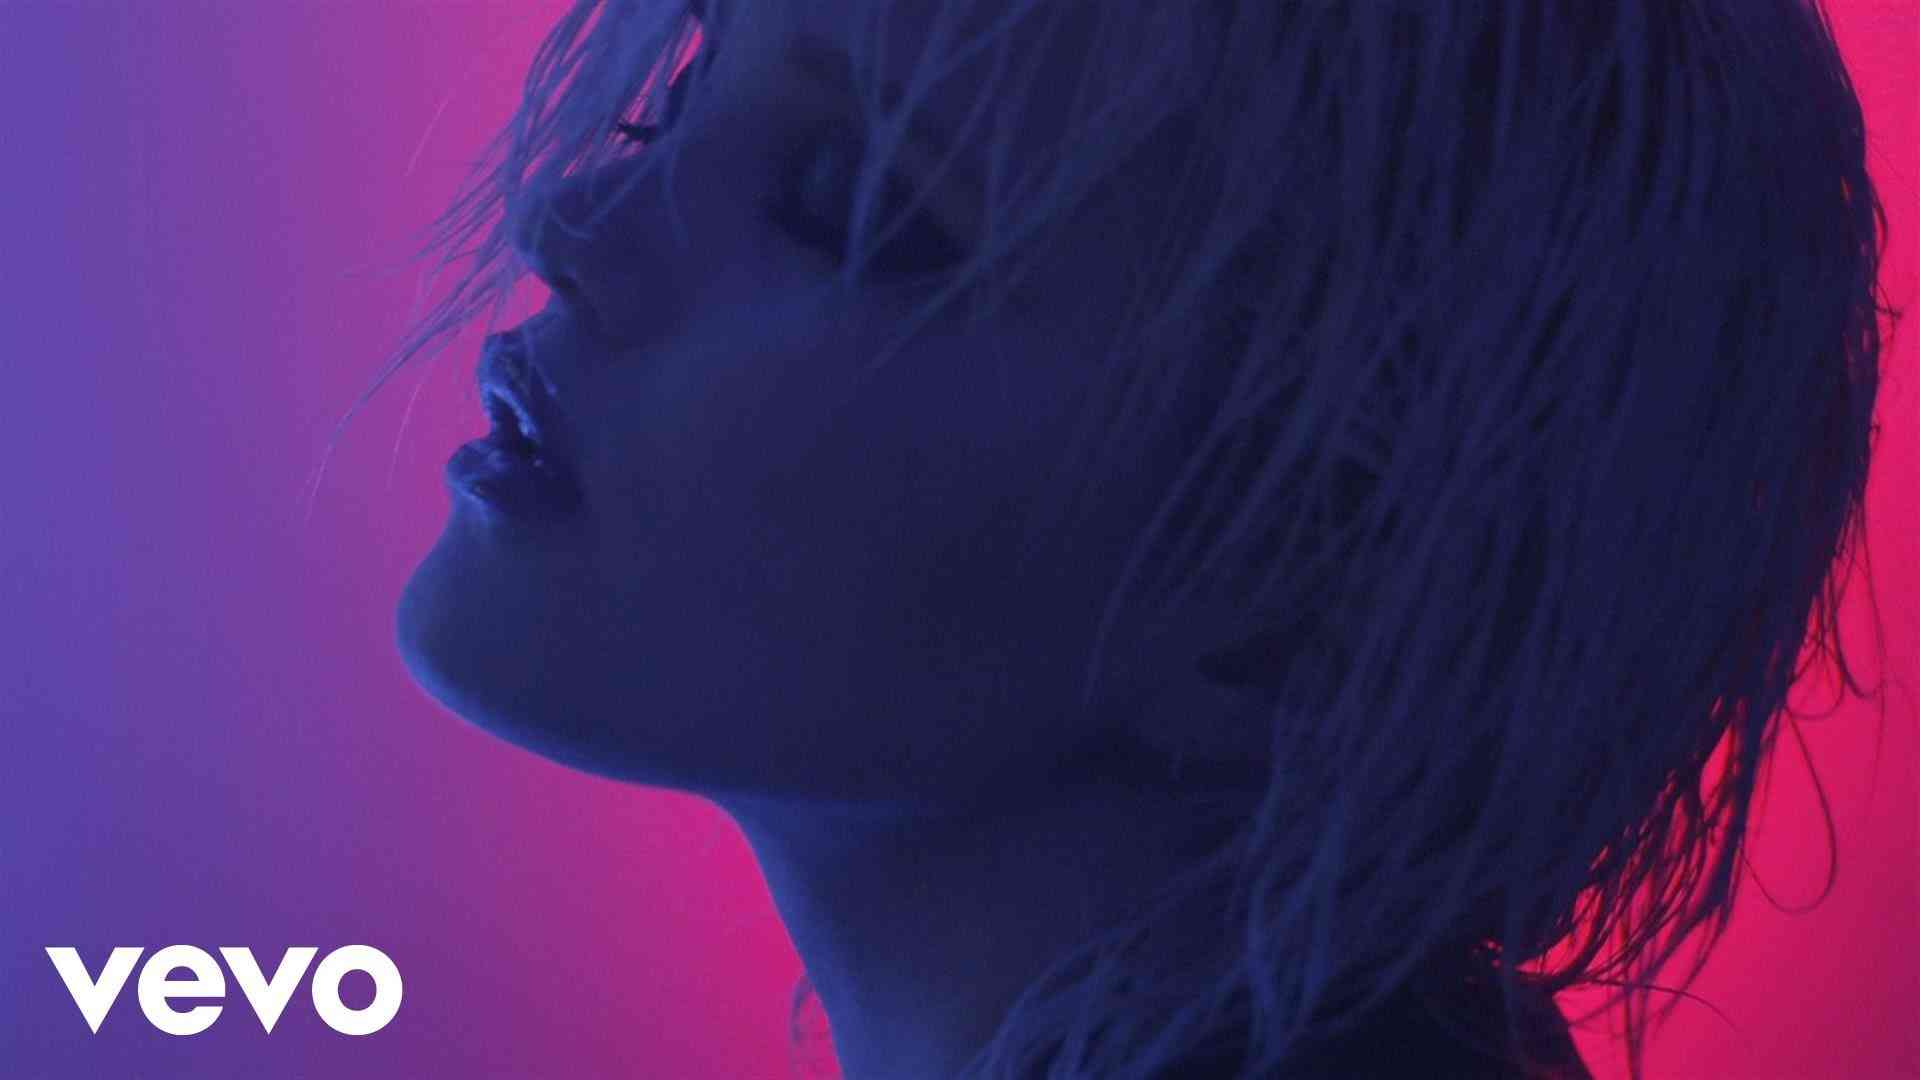 Sky Ferreira - You're Not The One (Official Video) - YouTube